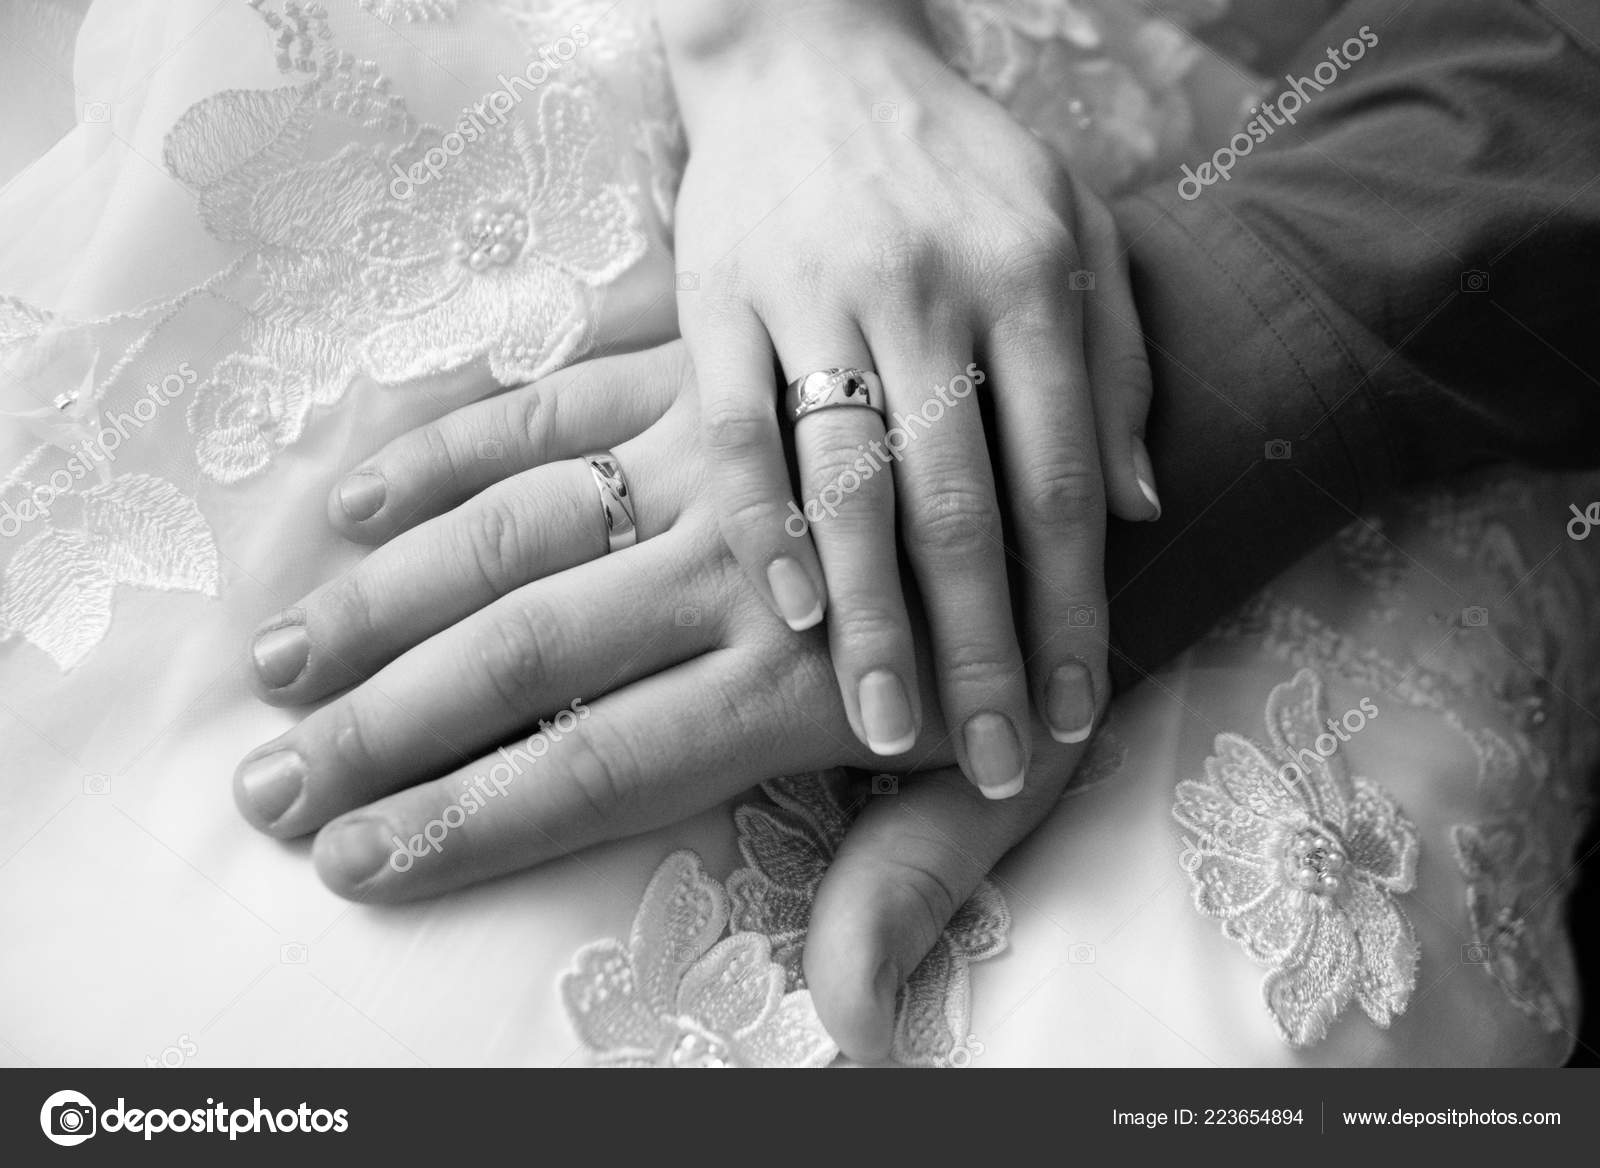 Black White Wedding Photo Hands Wedding Ring Rings Hands Couple